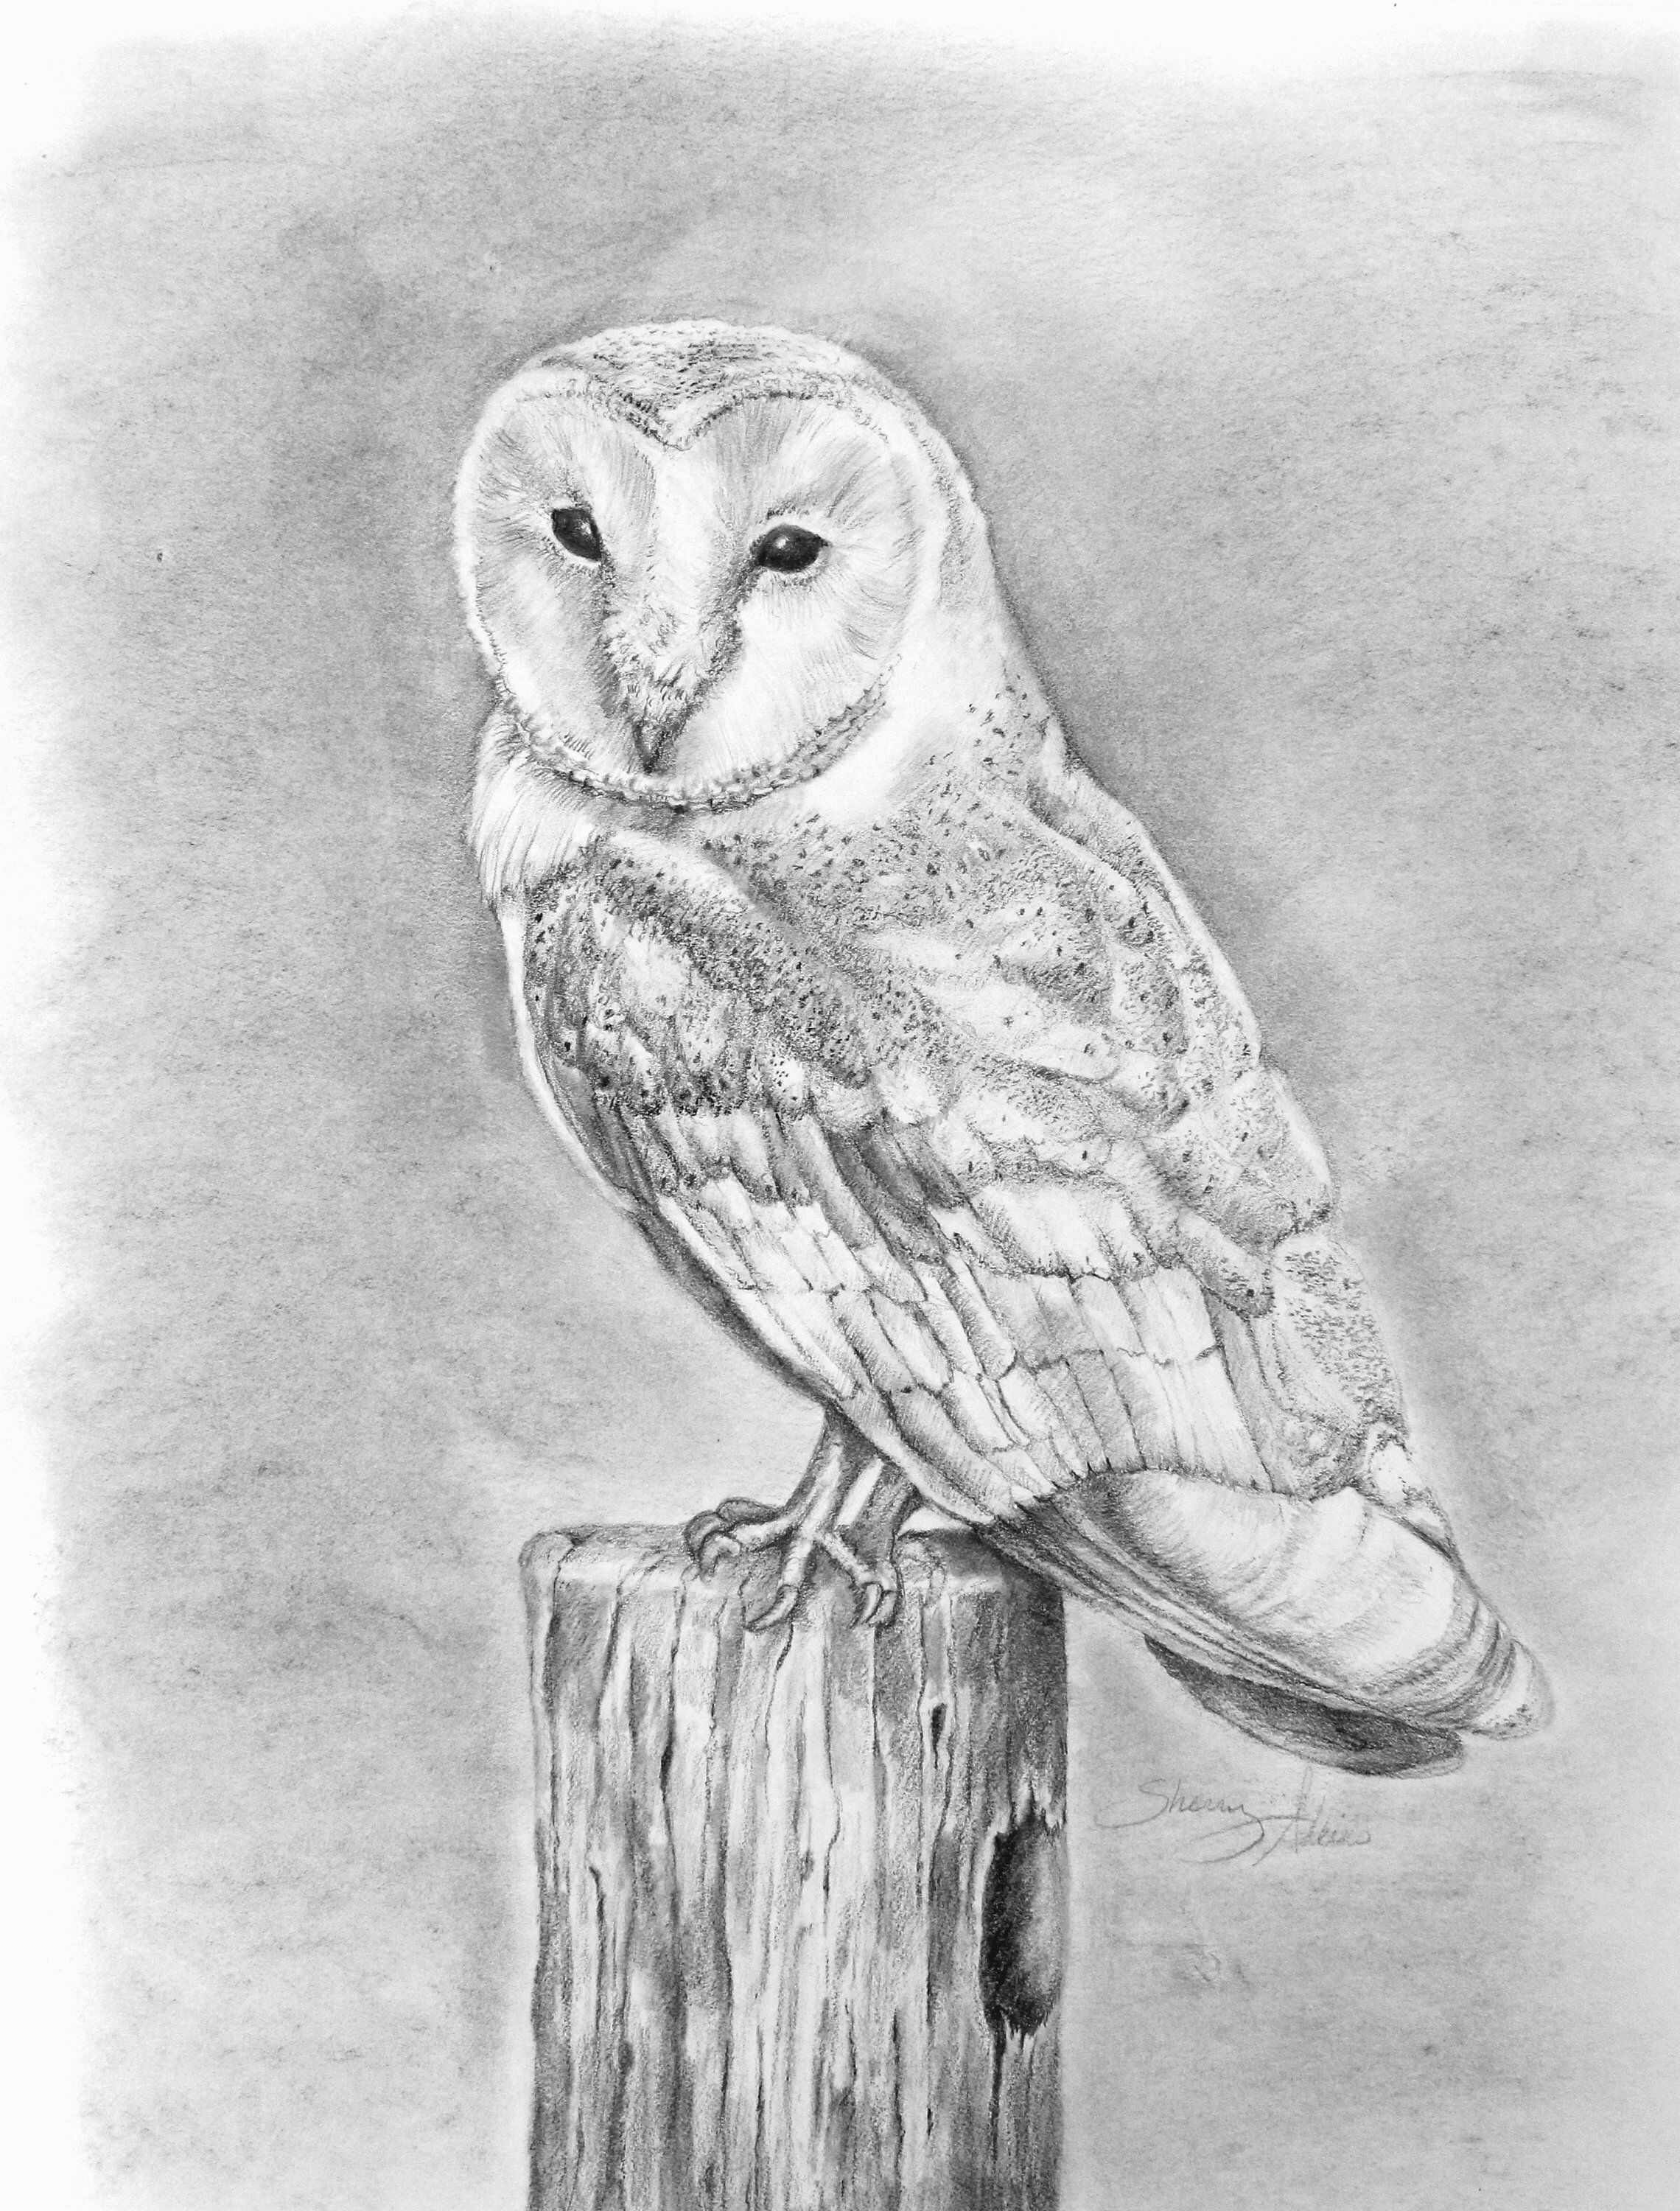 Barn owl pencil drawing print art by sherry adkins pencil